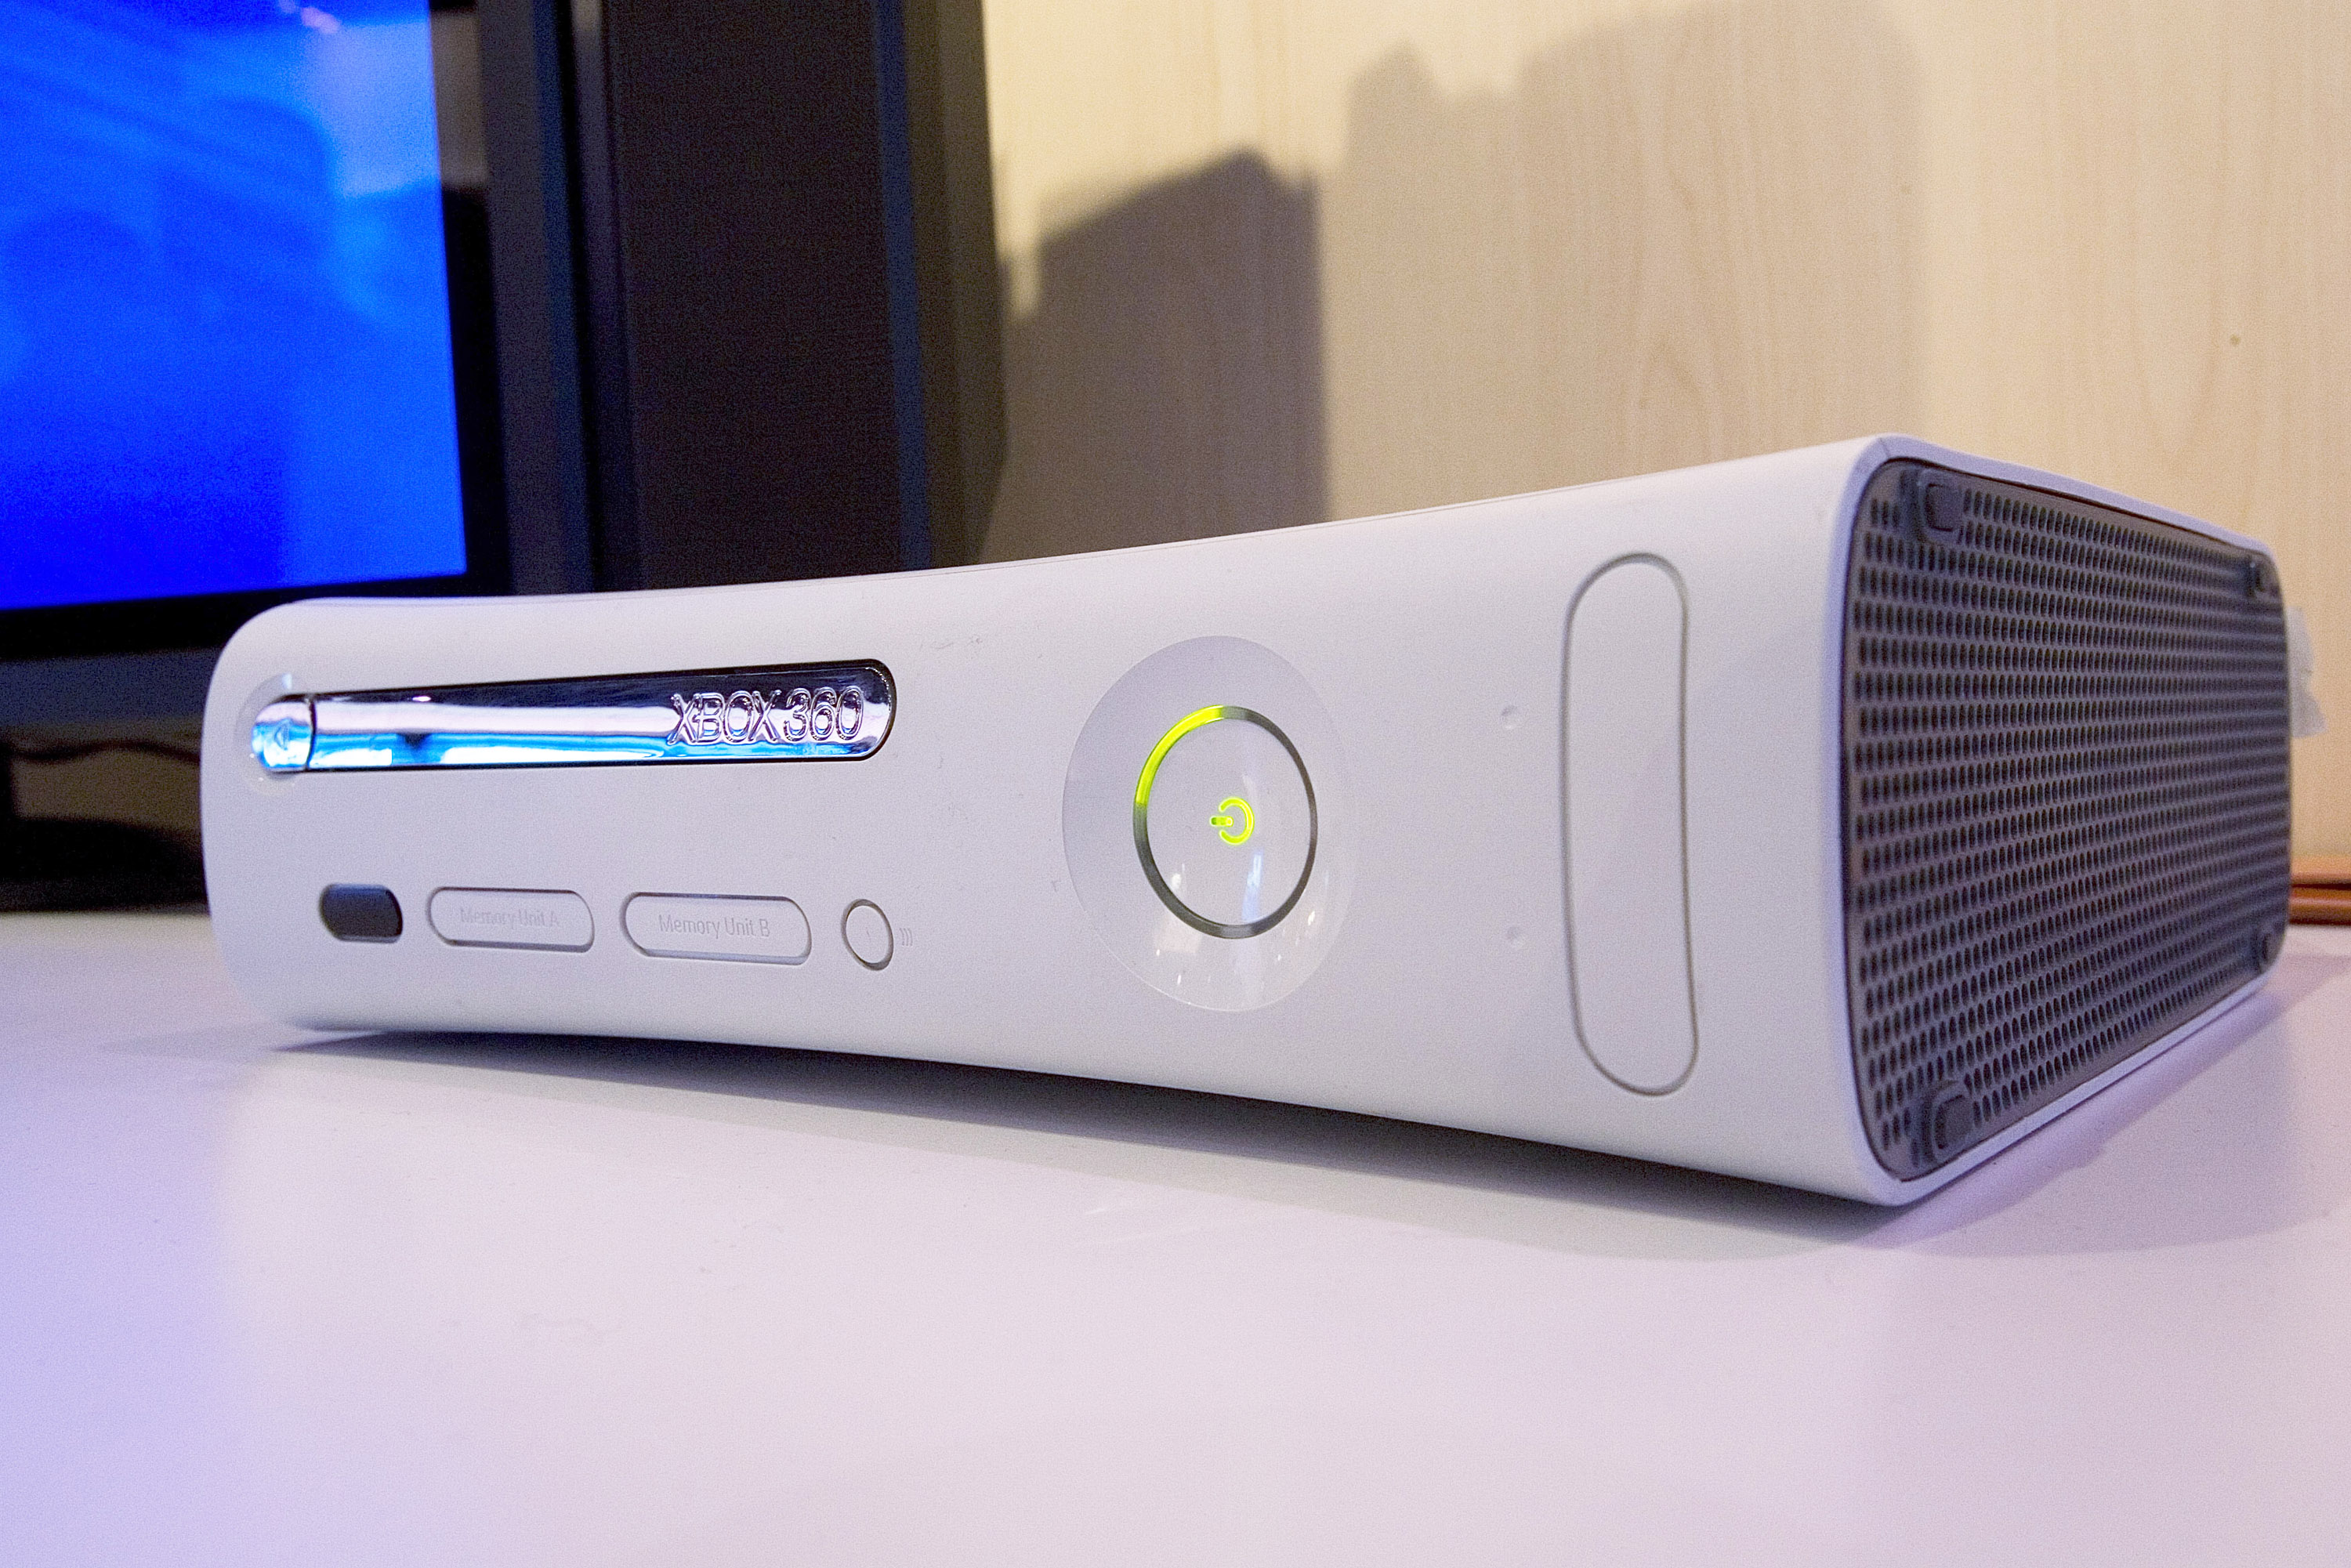 The Microsoft XBOX 360 is seen at the 2008 International Consumer Electronics Show at the Las Vegas Convention Center January 9, 2008 in Las Vegas, Nevada.